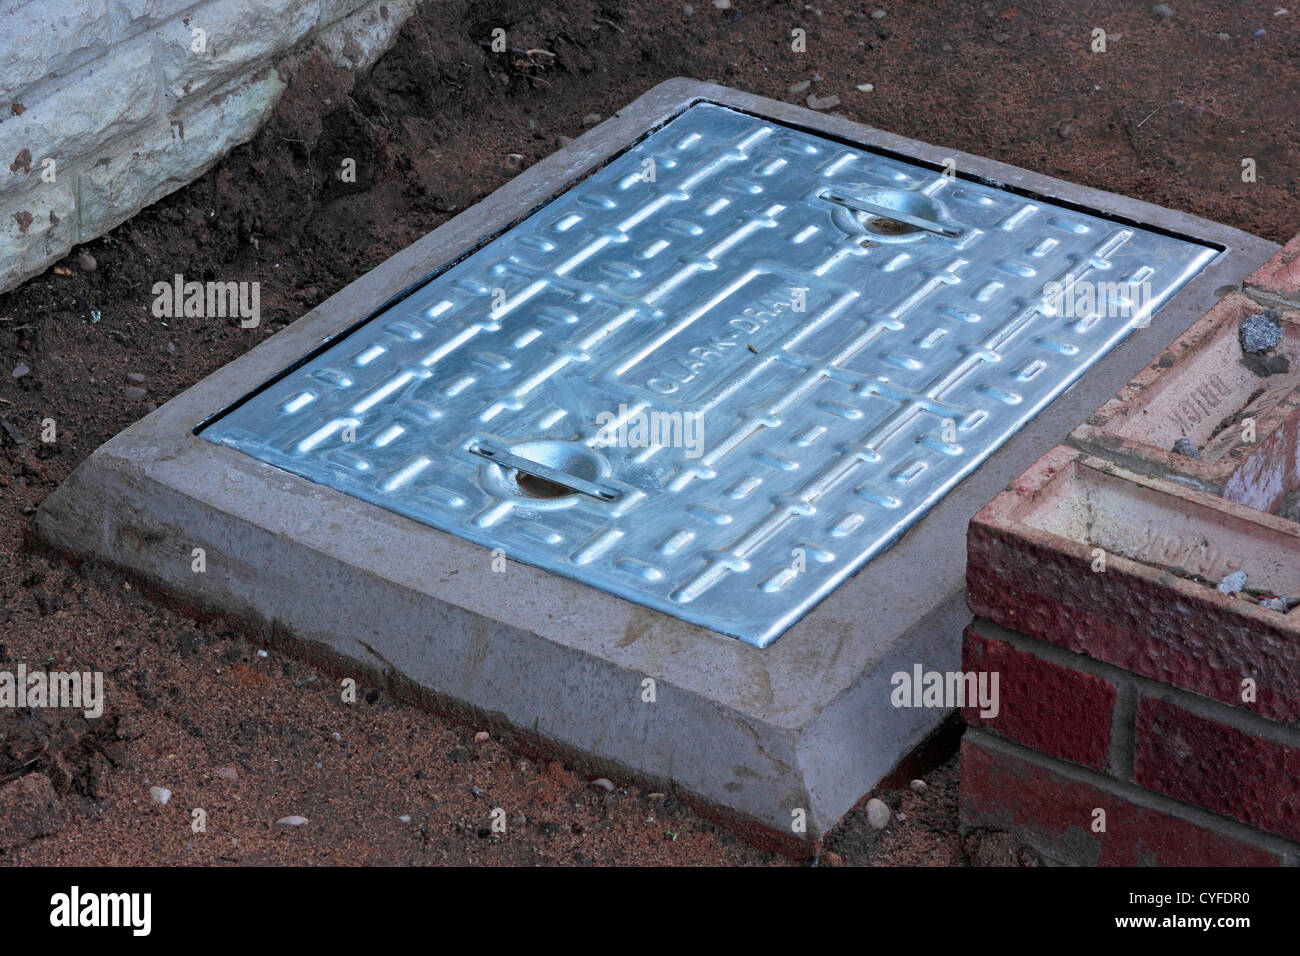 Newly Installed Domestic Drain Inspection Chamber Cover - Stock Image